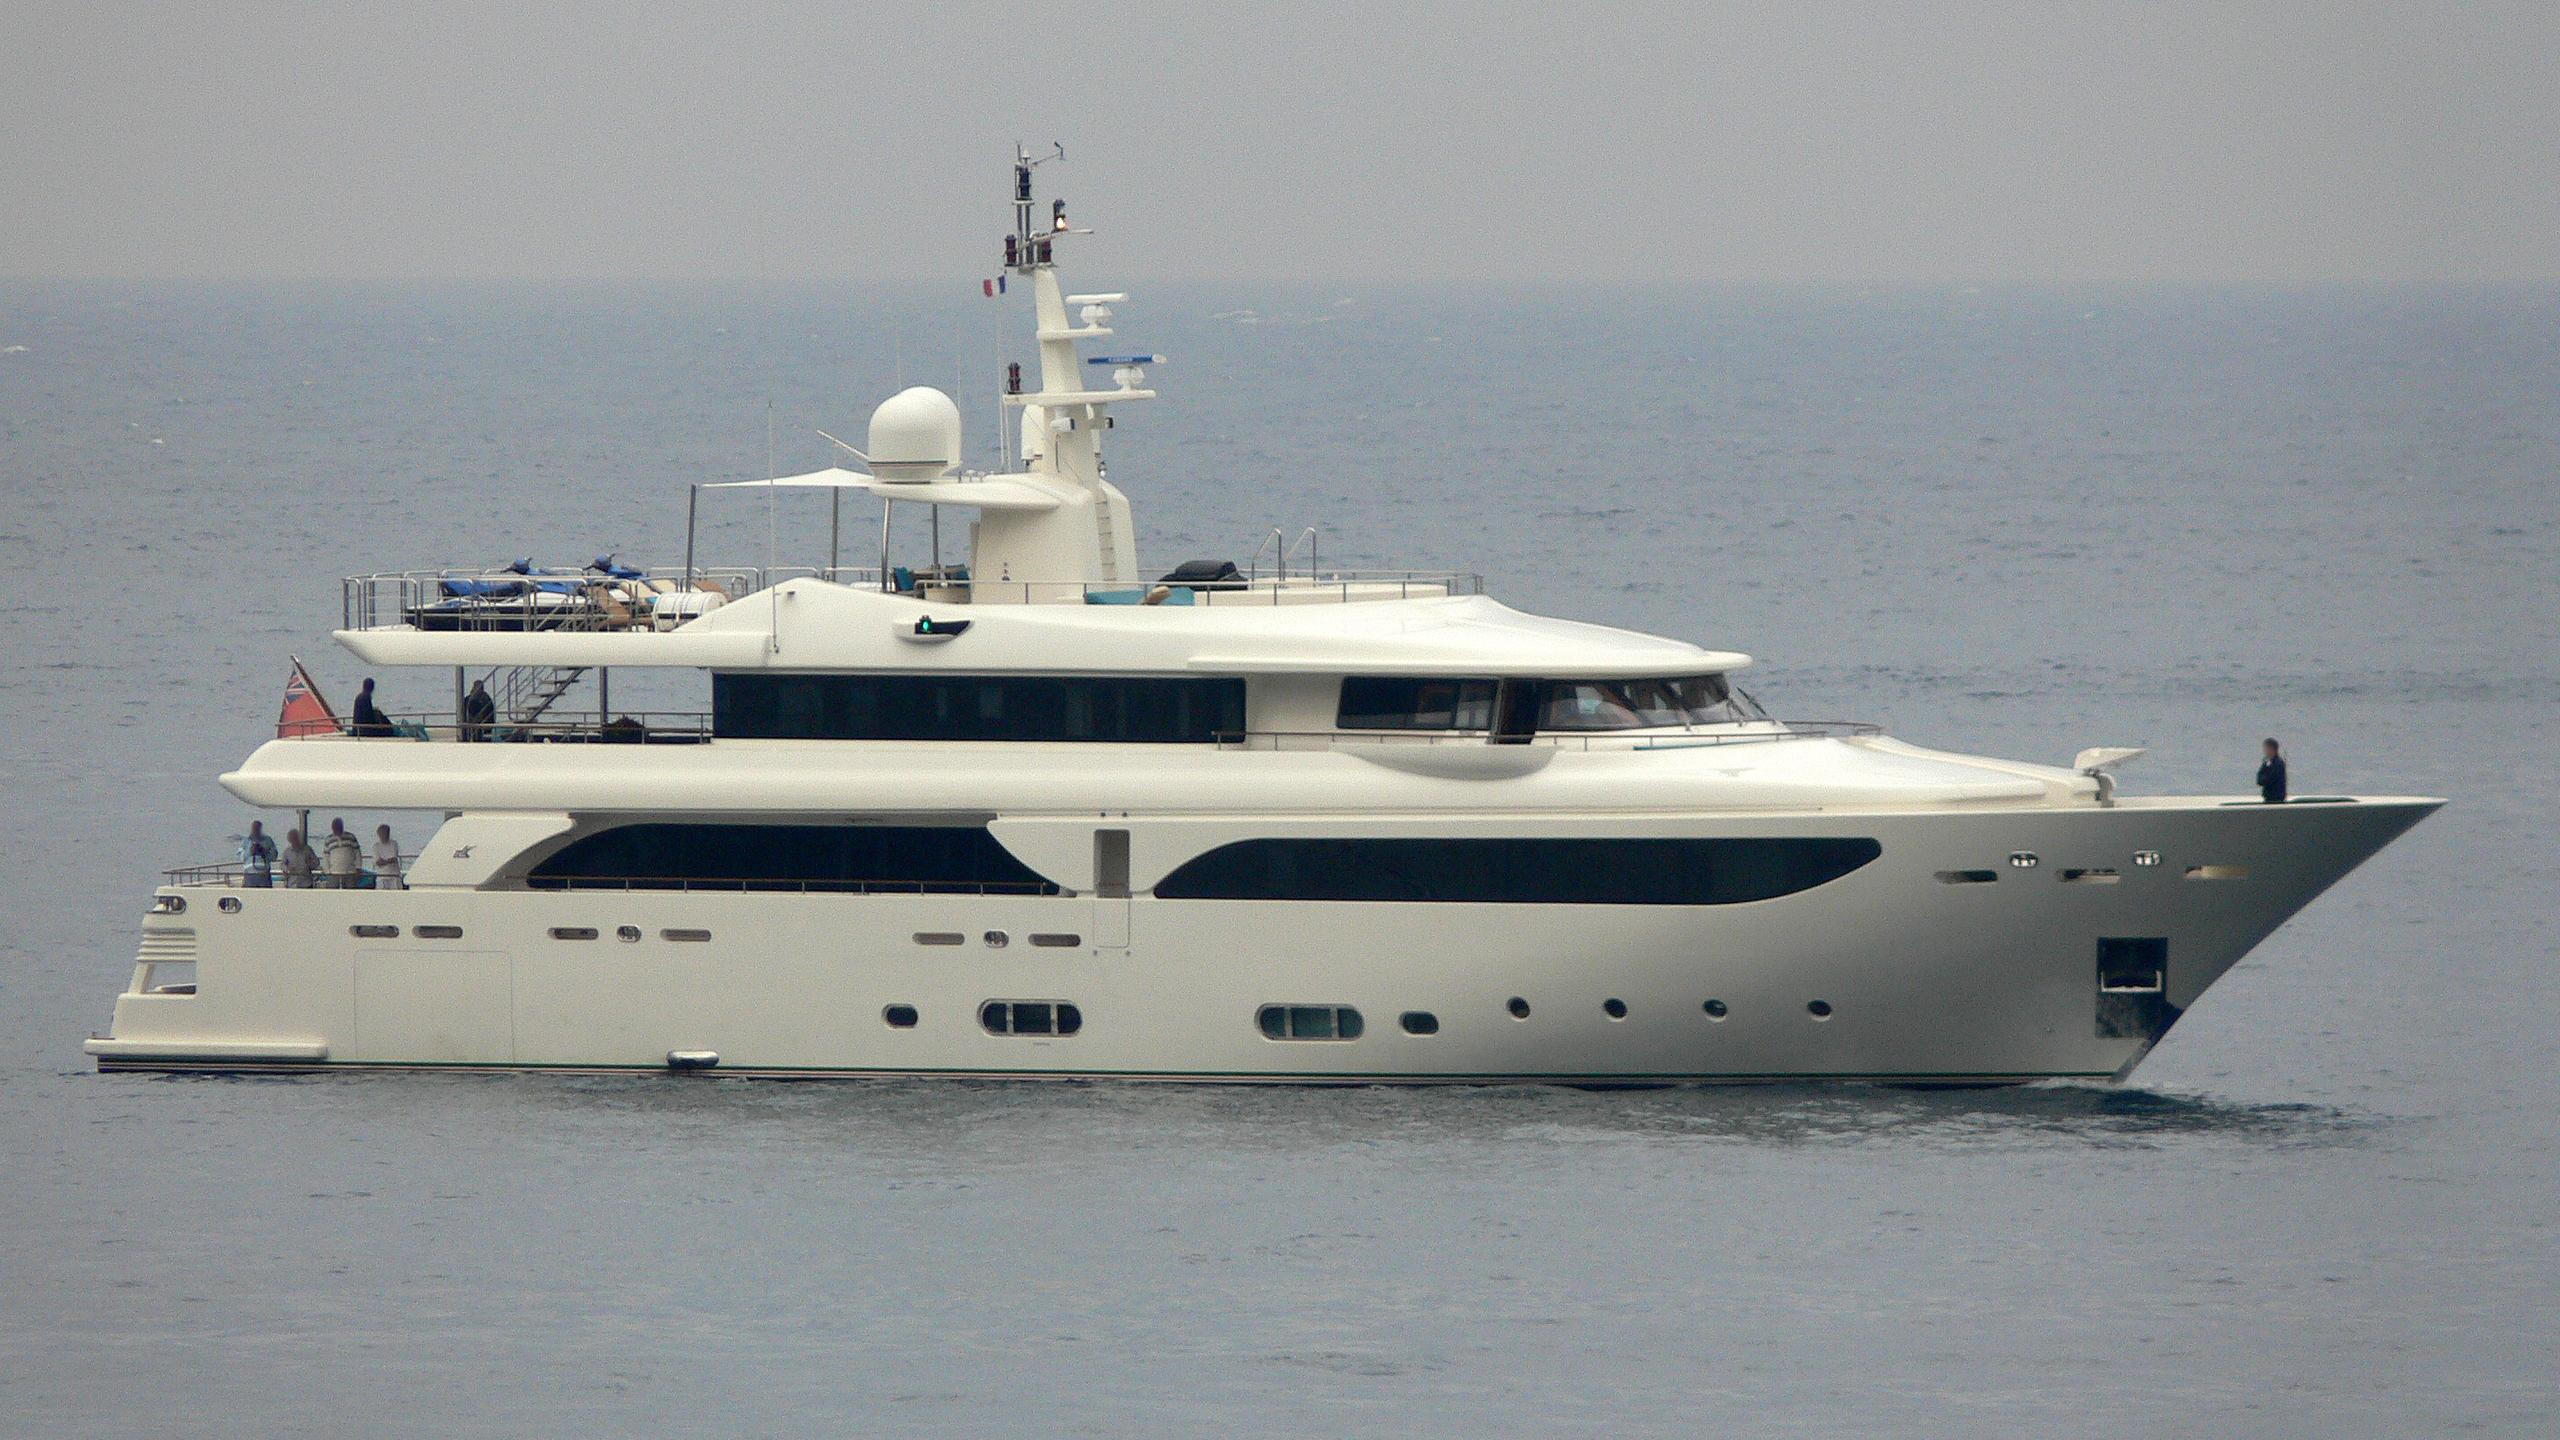 emotion 2 motoryacht crn 43m 2007 profile